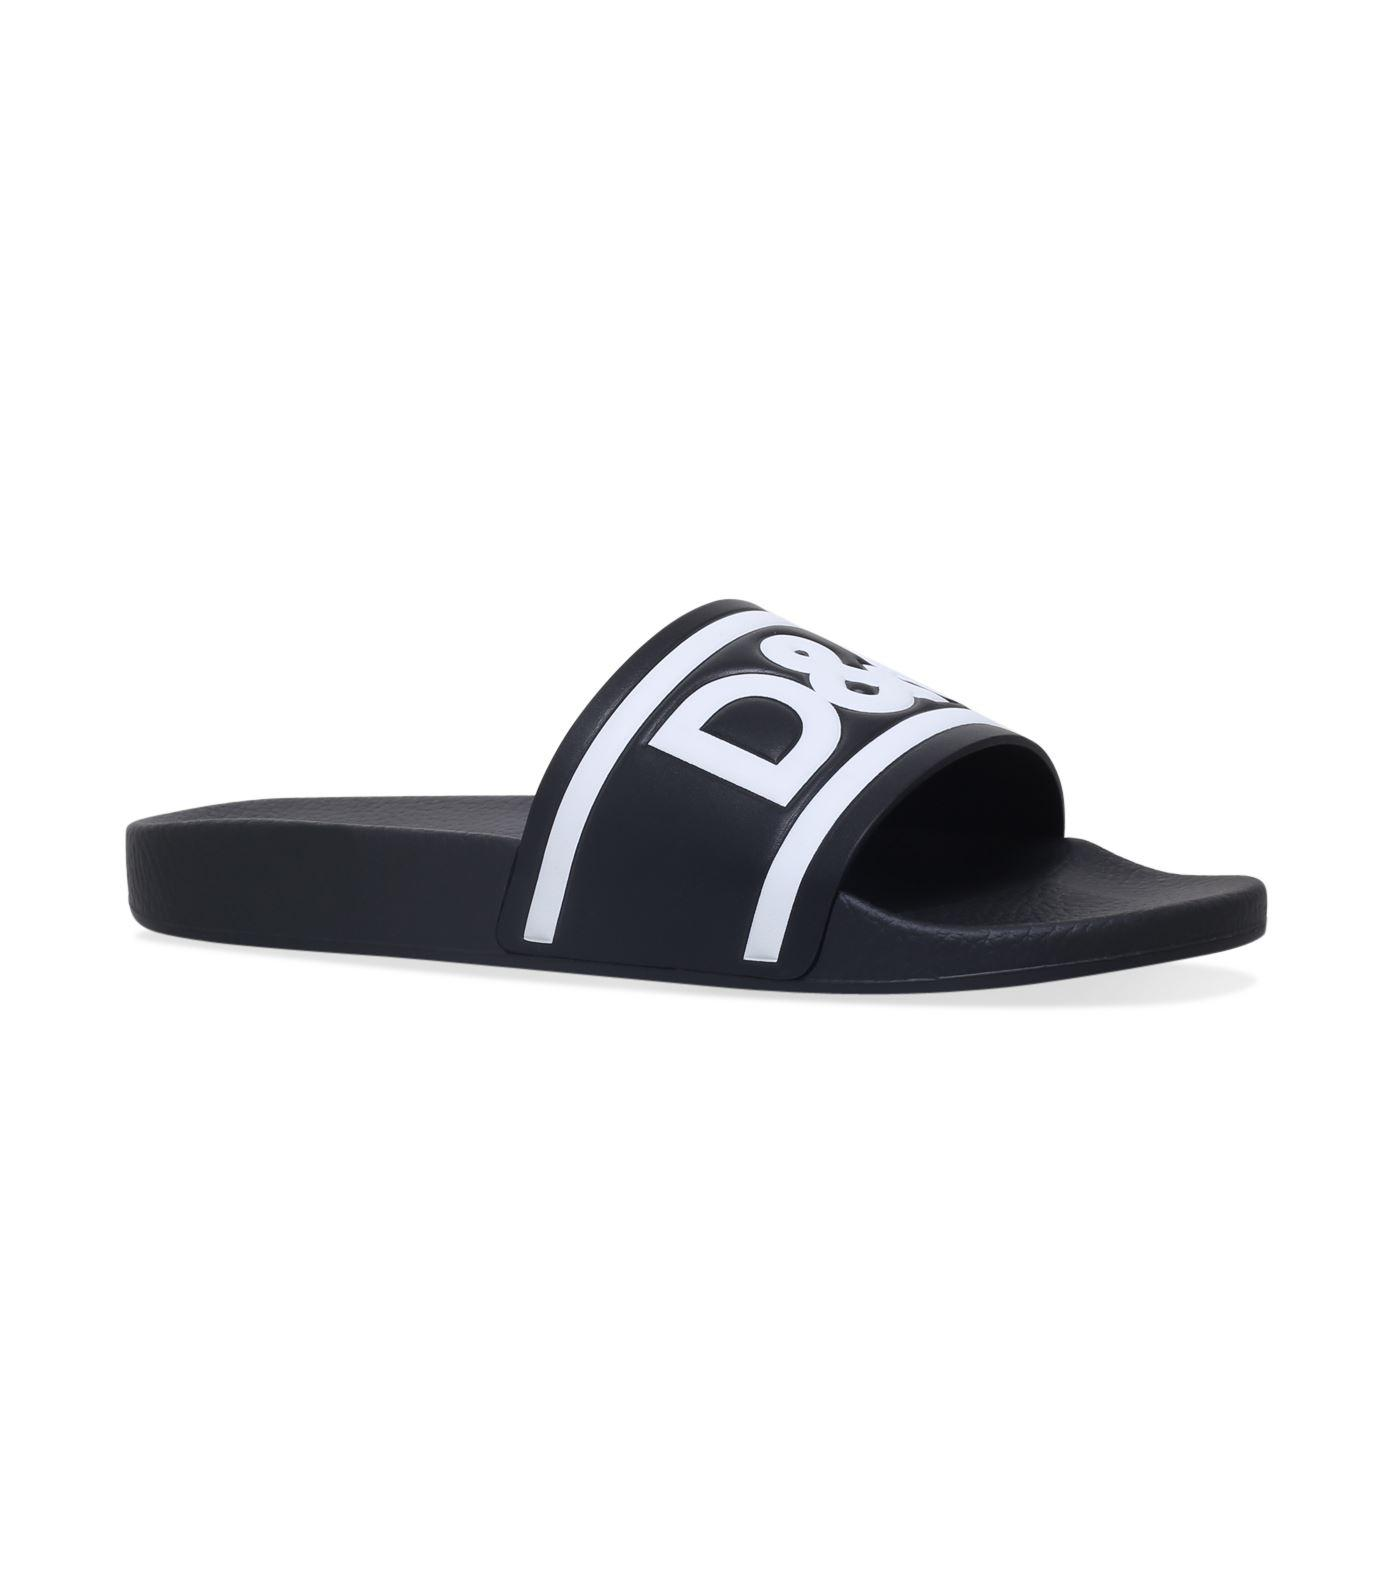 Wide Range Of Sale Online Discount Outlet Sandals SAINT BARTH leather white bordeaux logo Dolce & Gabbana o9bYps0